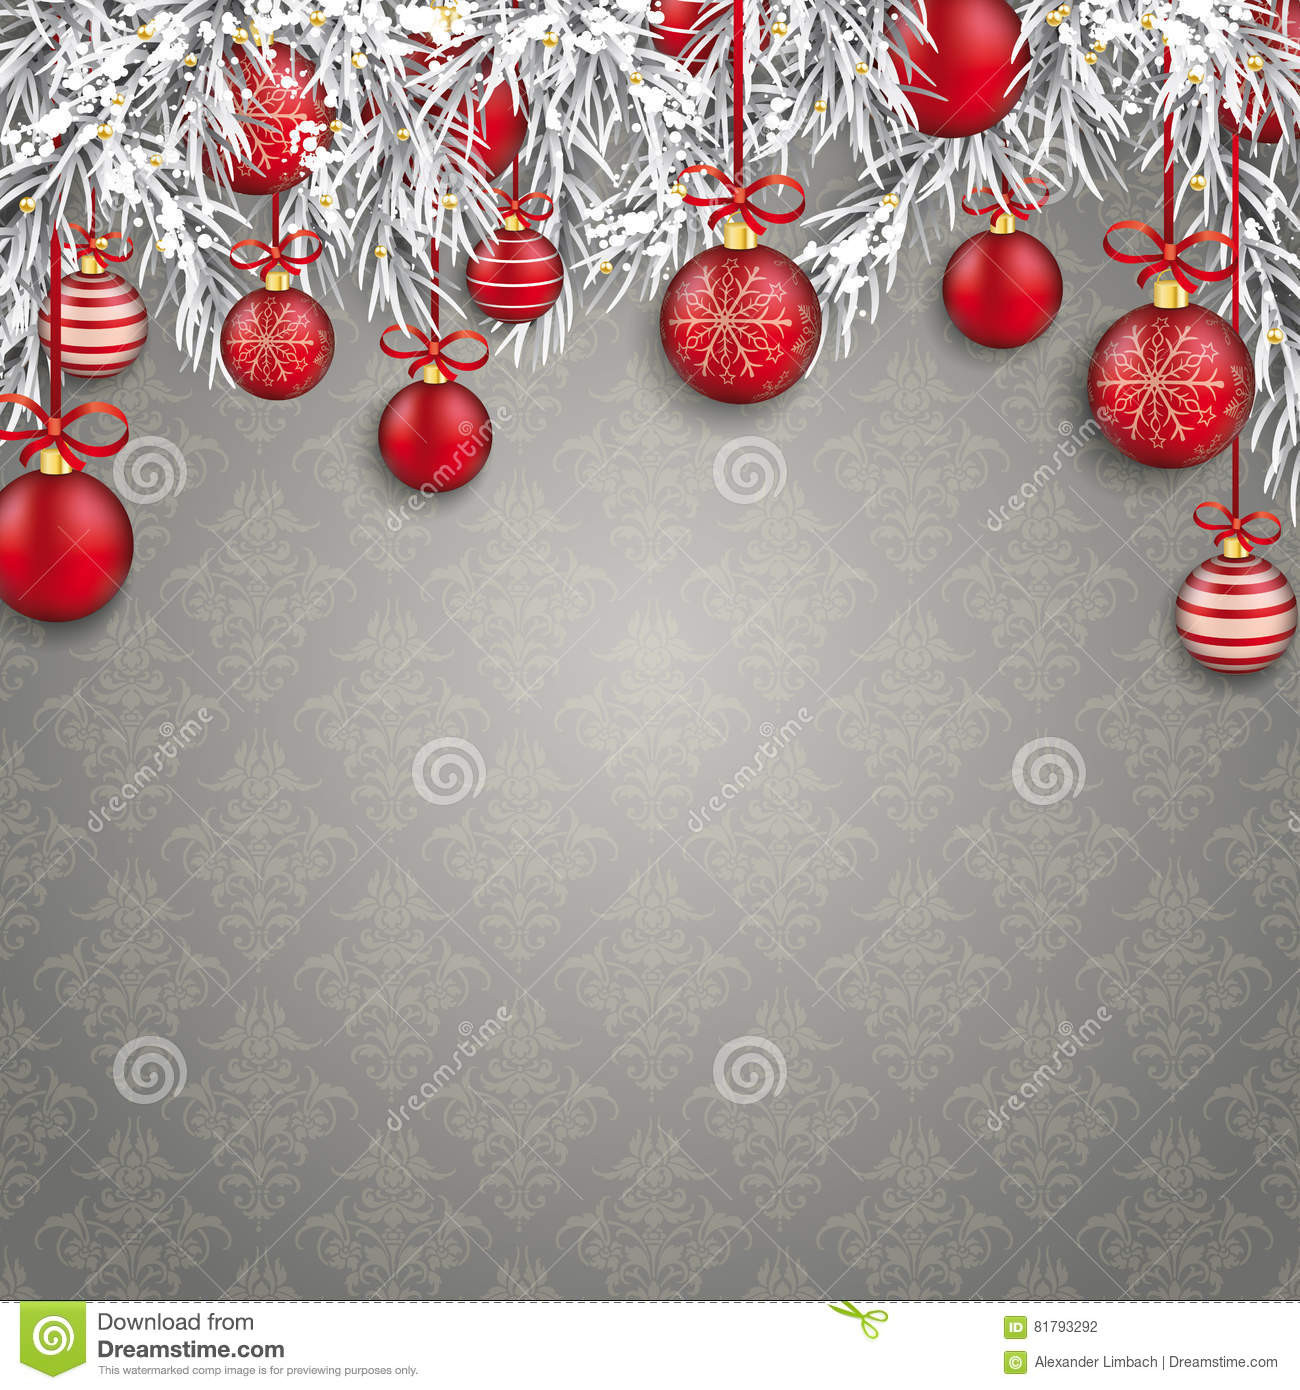 Kerstmis Gray Ornaments Red Baubles Twigs